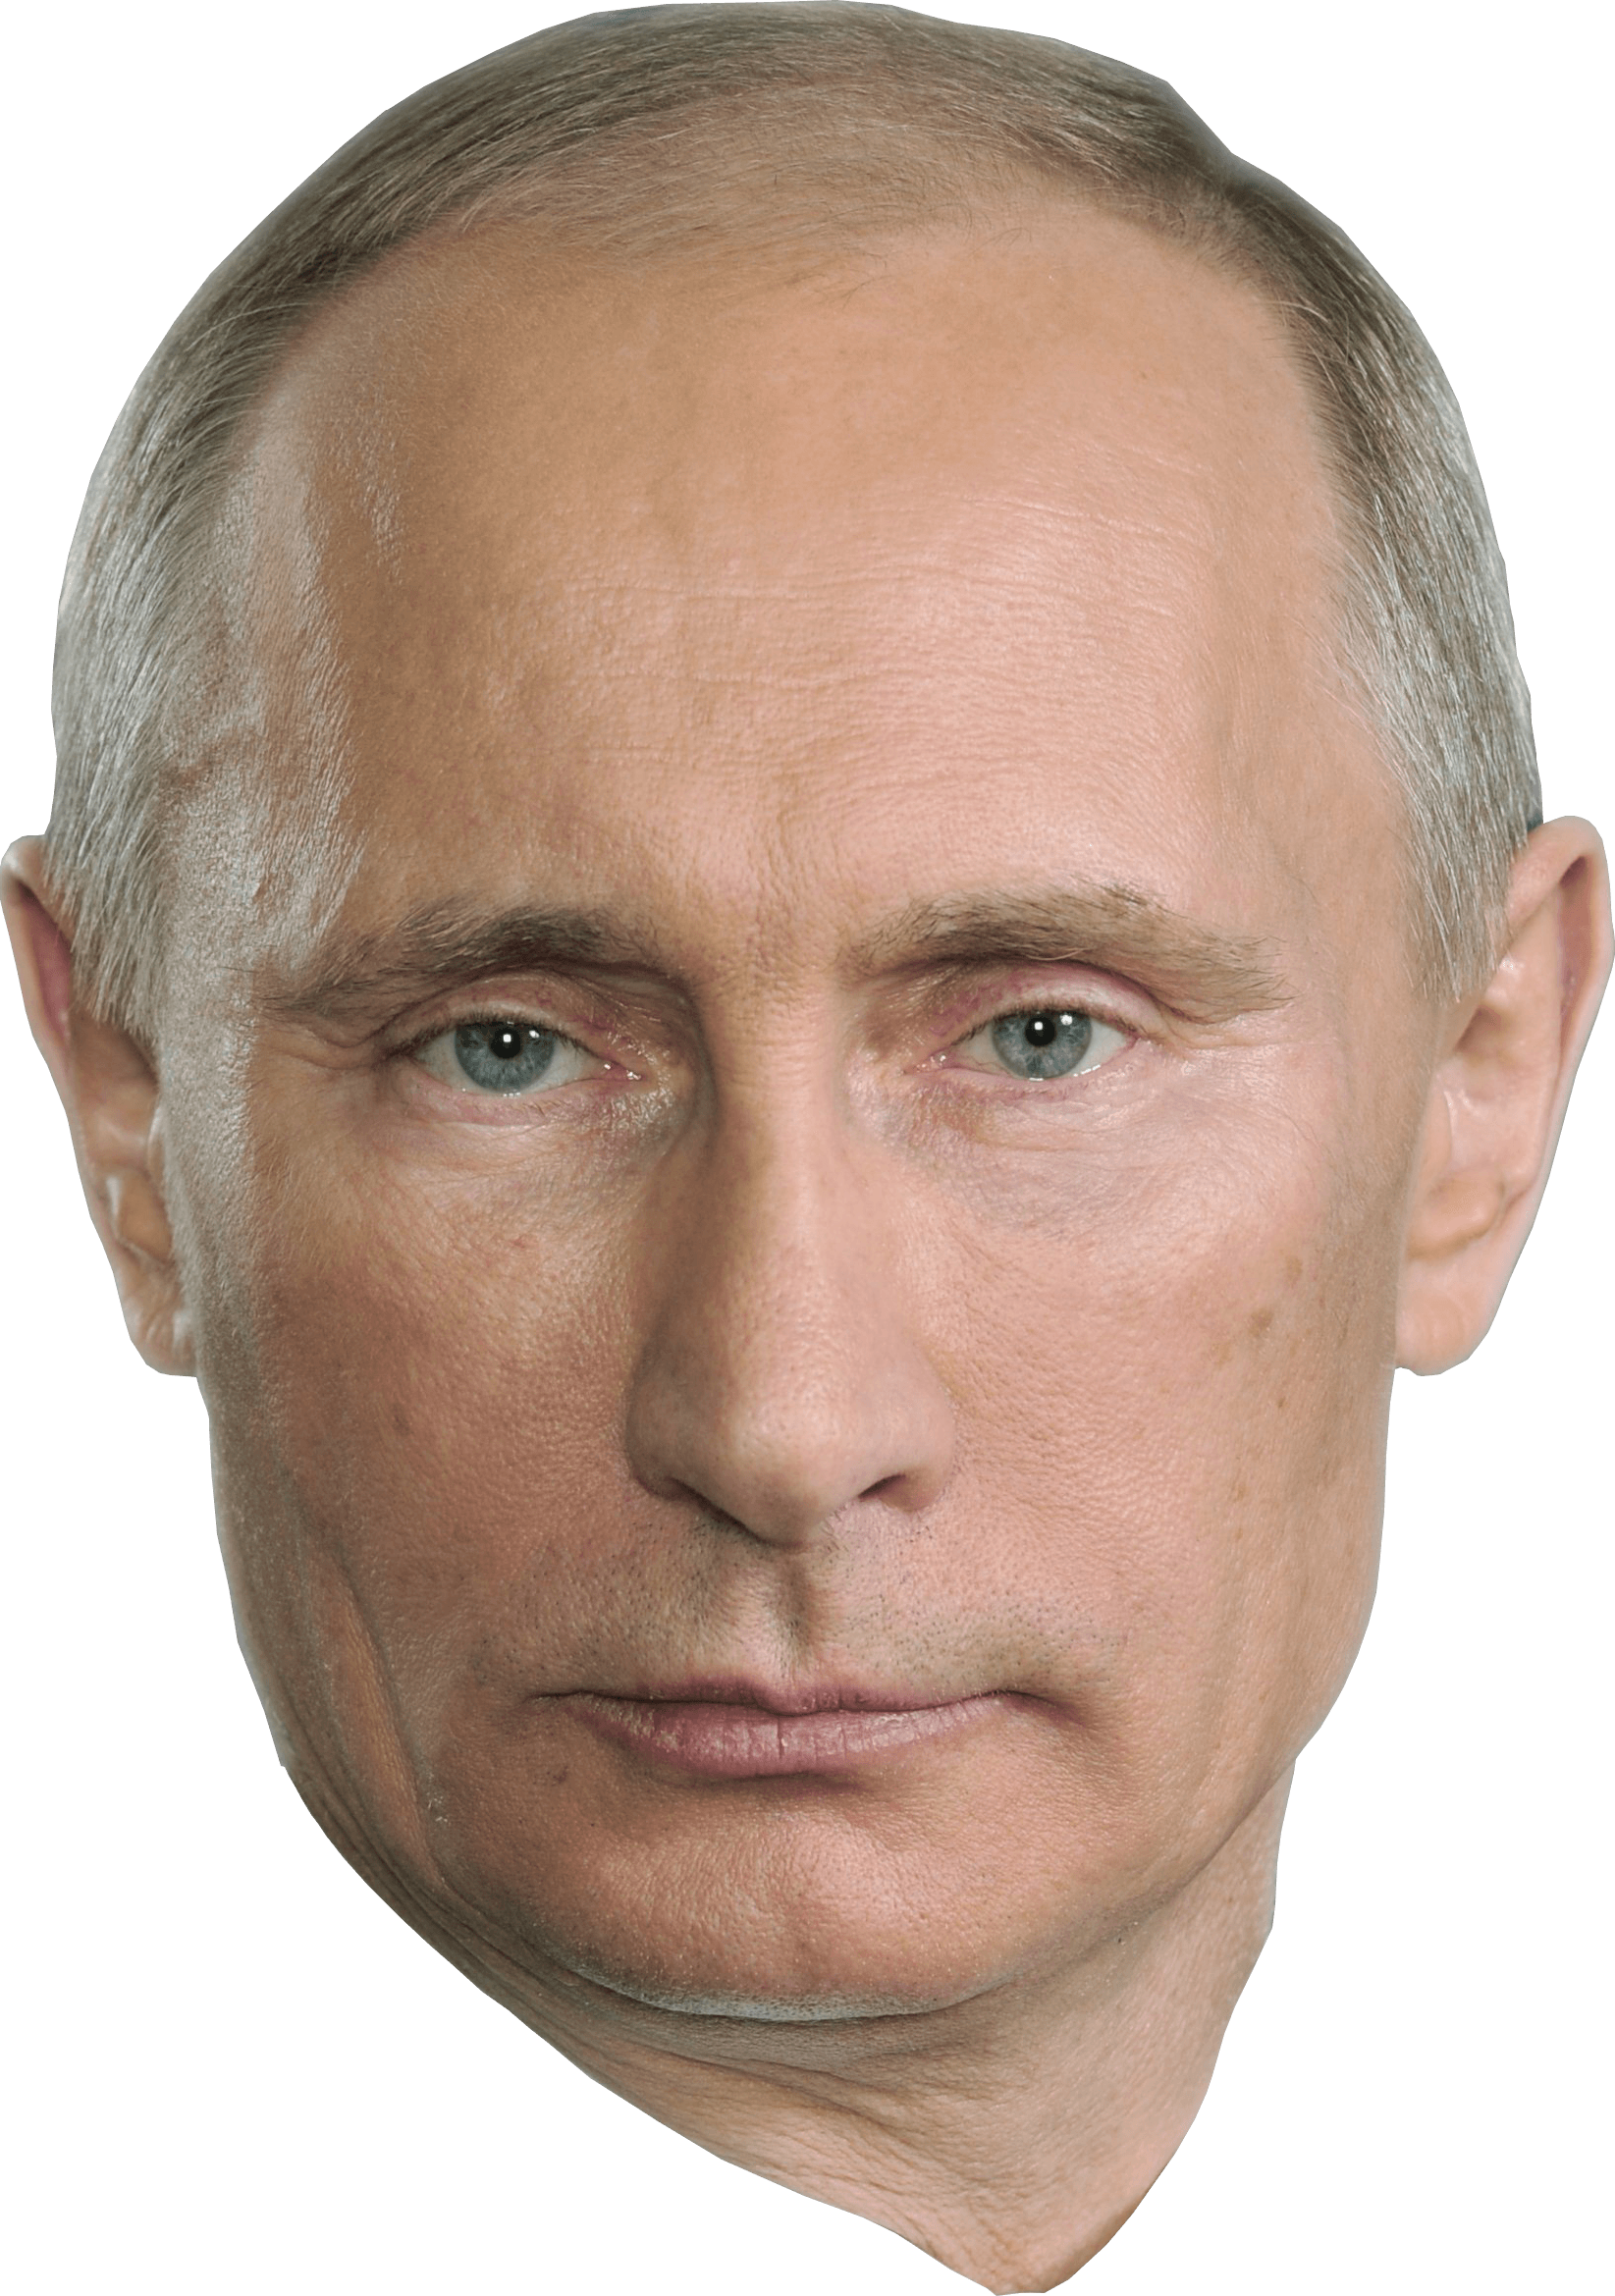 Putin face png. Transparent stickpng